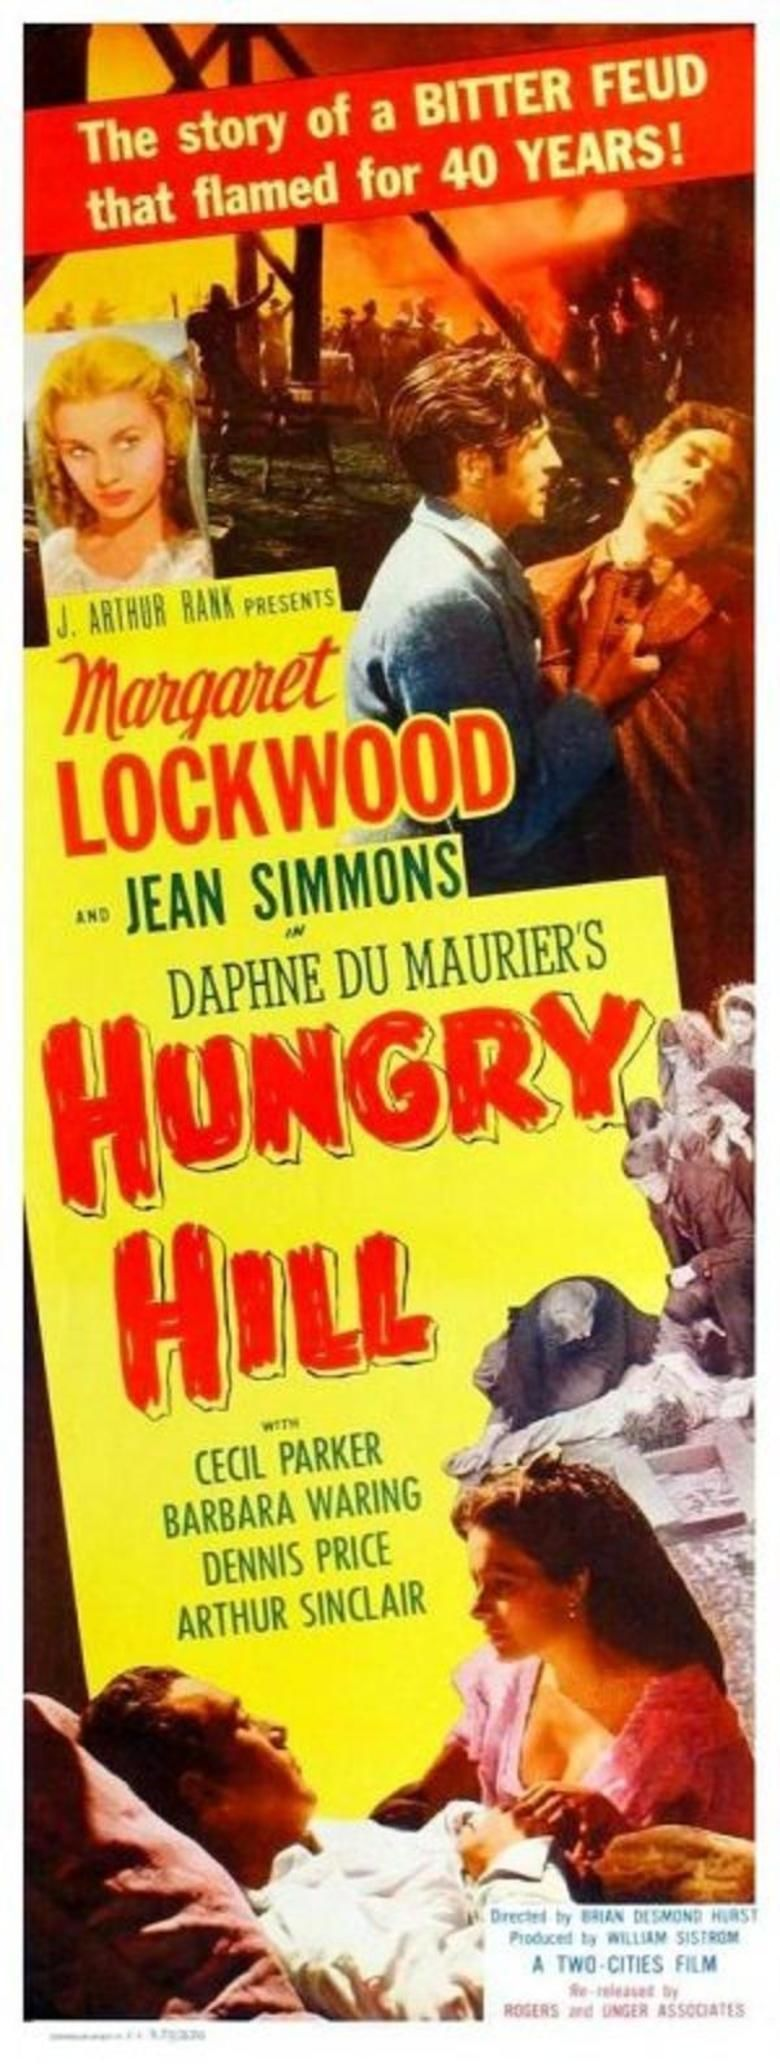 Hungry Hill (film) movie poster